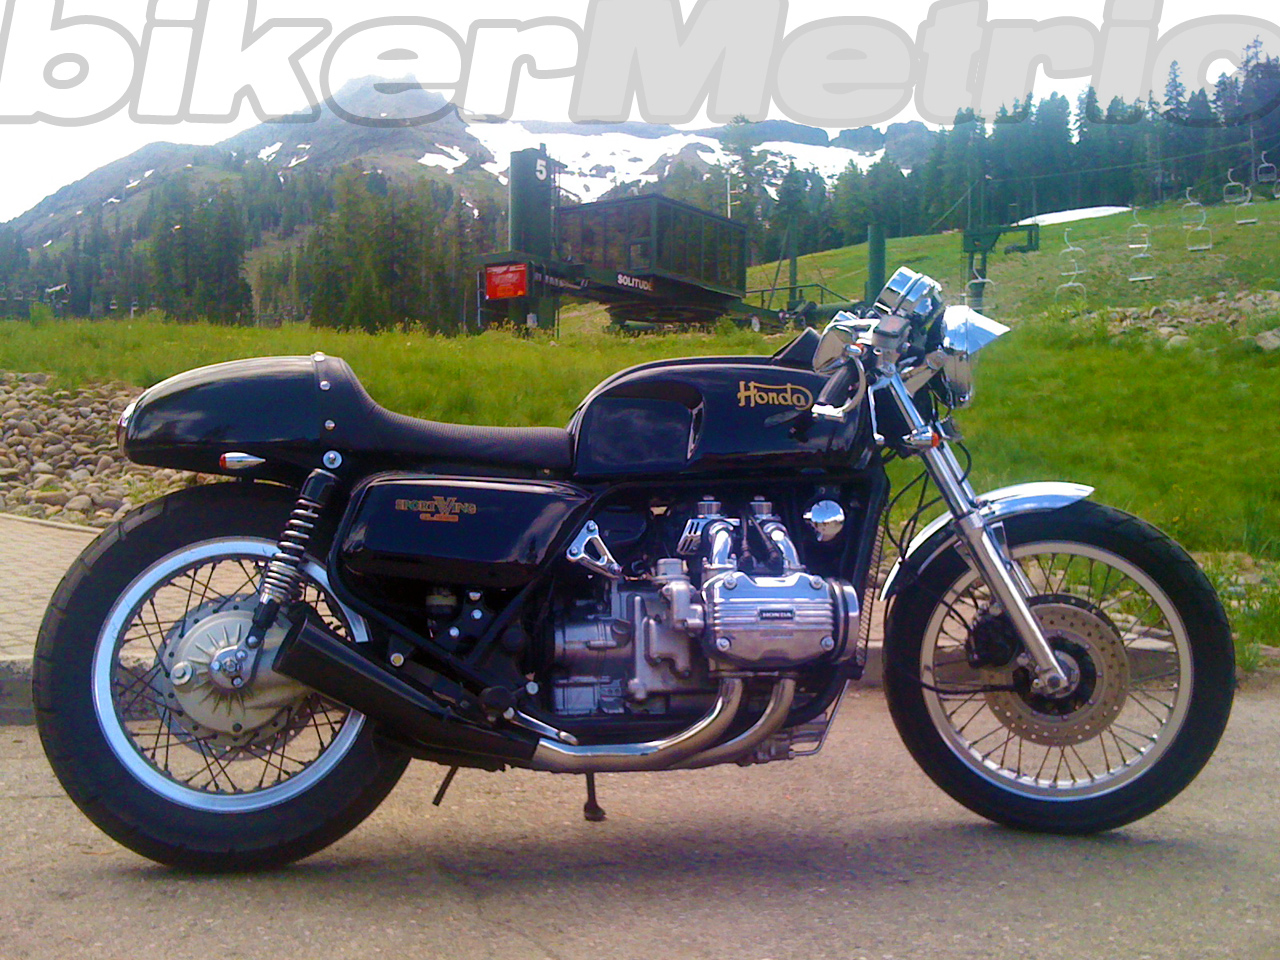 Finally This 1979 Black And Gold Cafe Racer Honda Gl1000